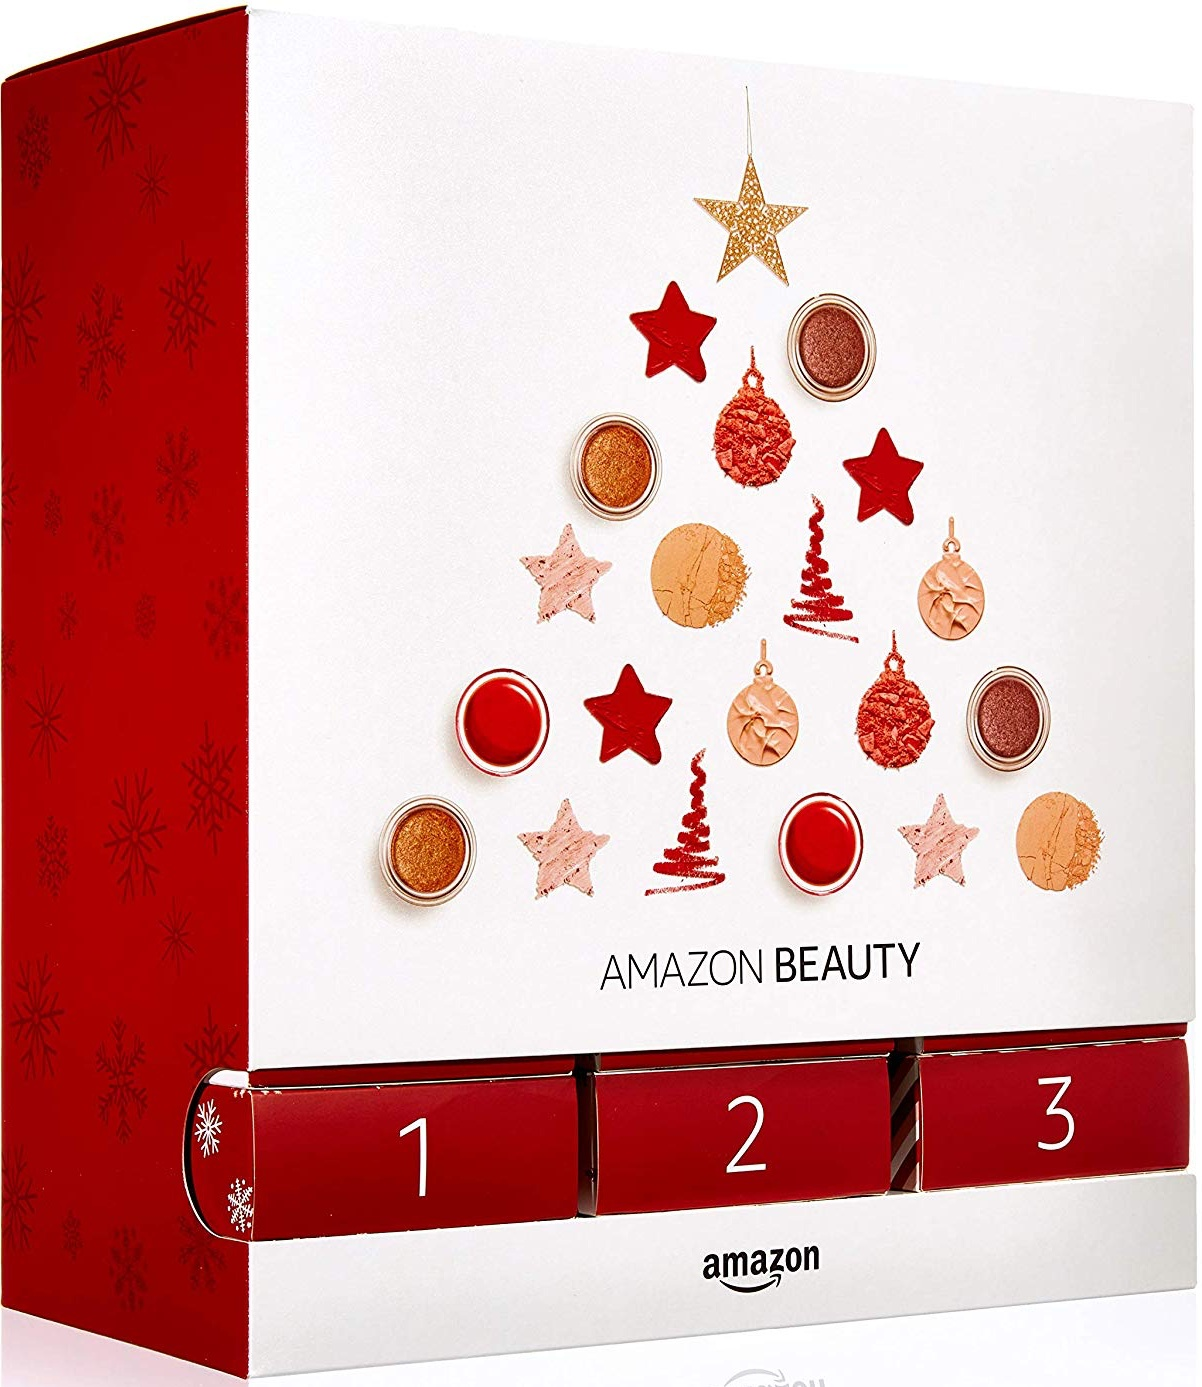 Amazon advent calendar 2019 - The LDN Diaries